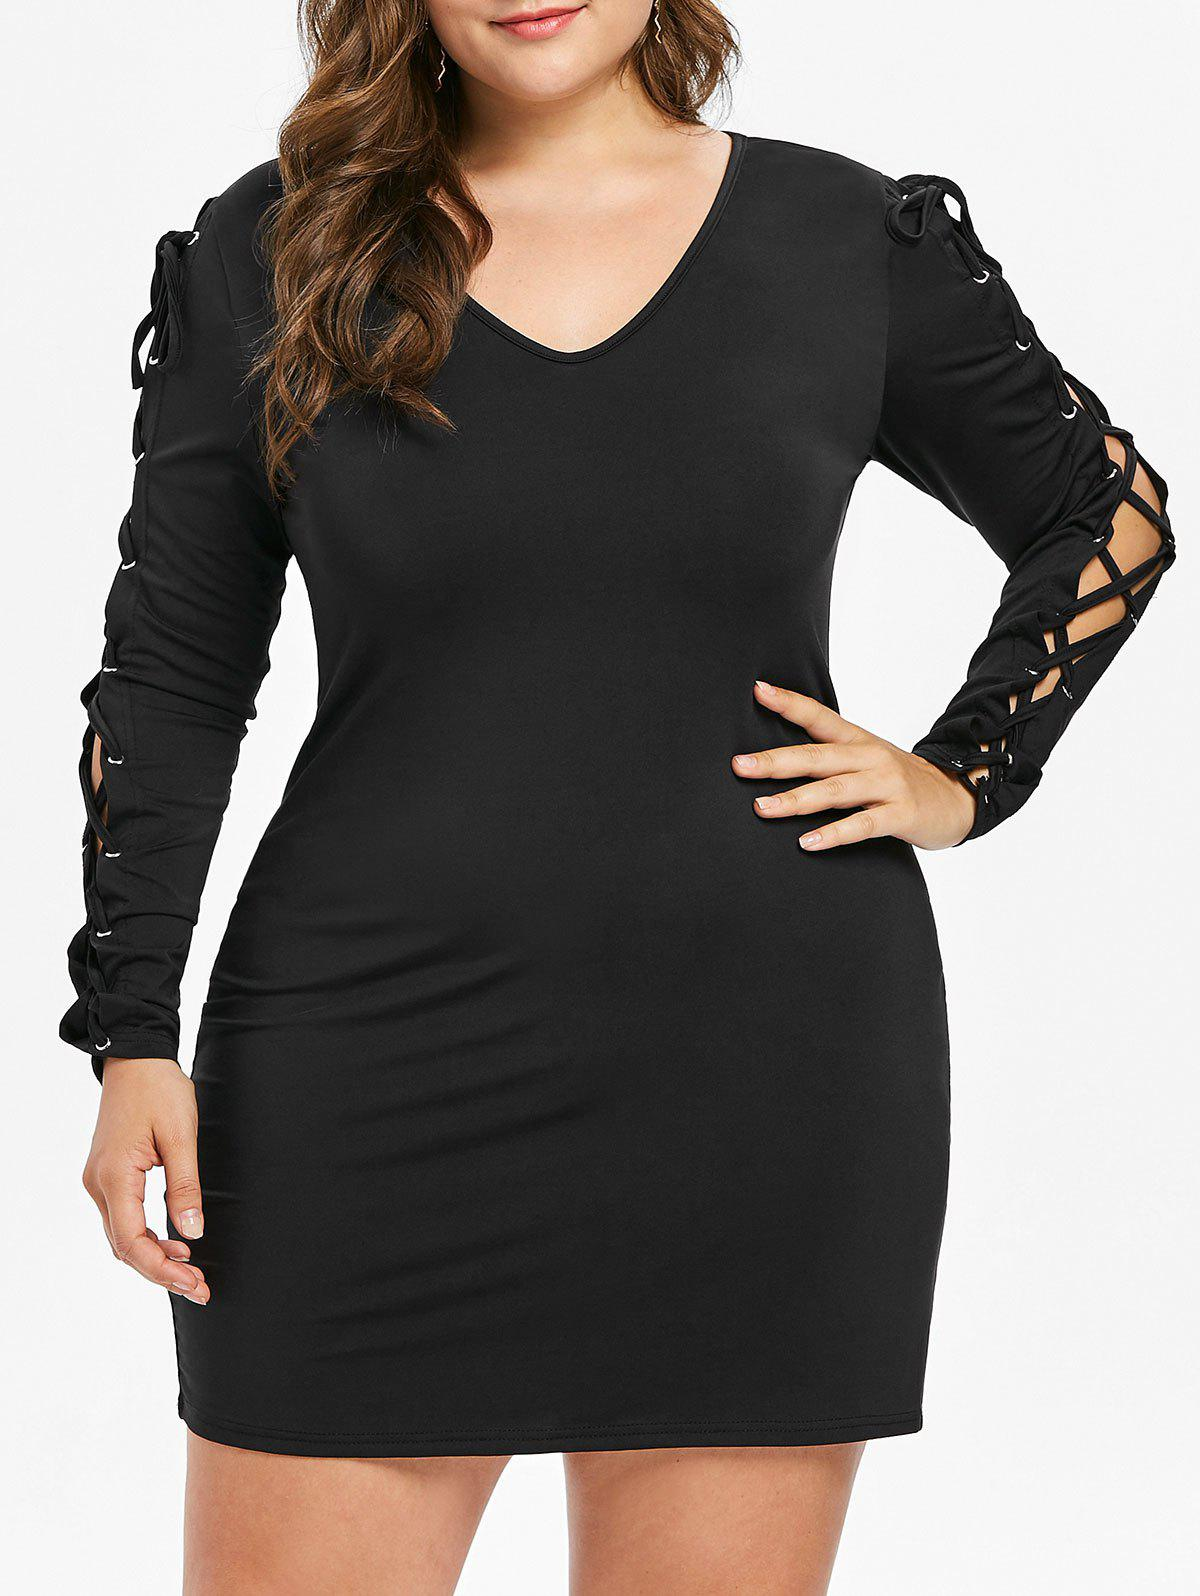 Lace Up Long Sleeve Plus Size Dress - BLACK 1X